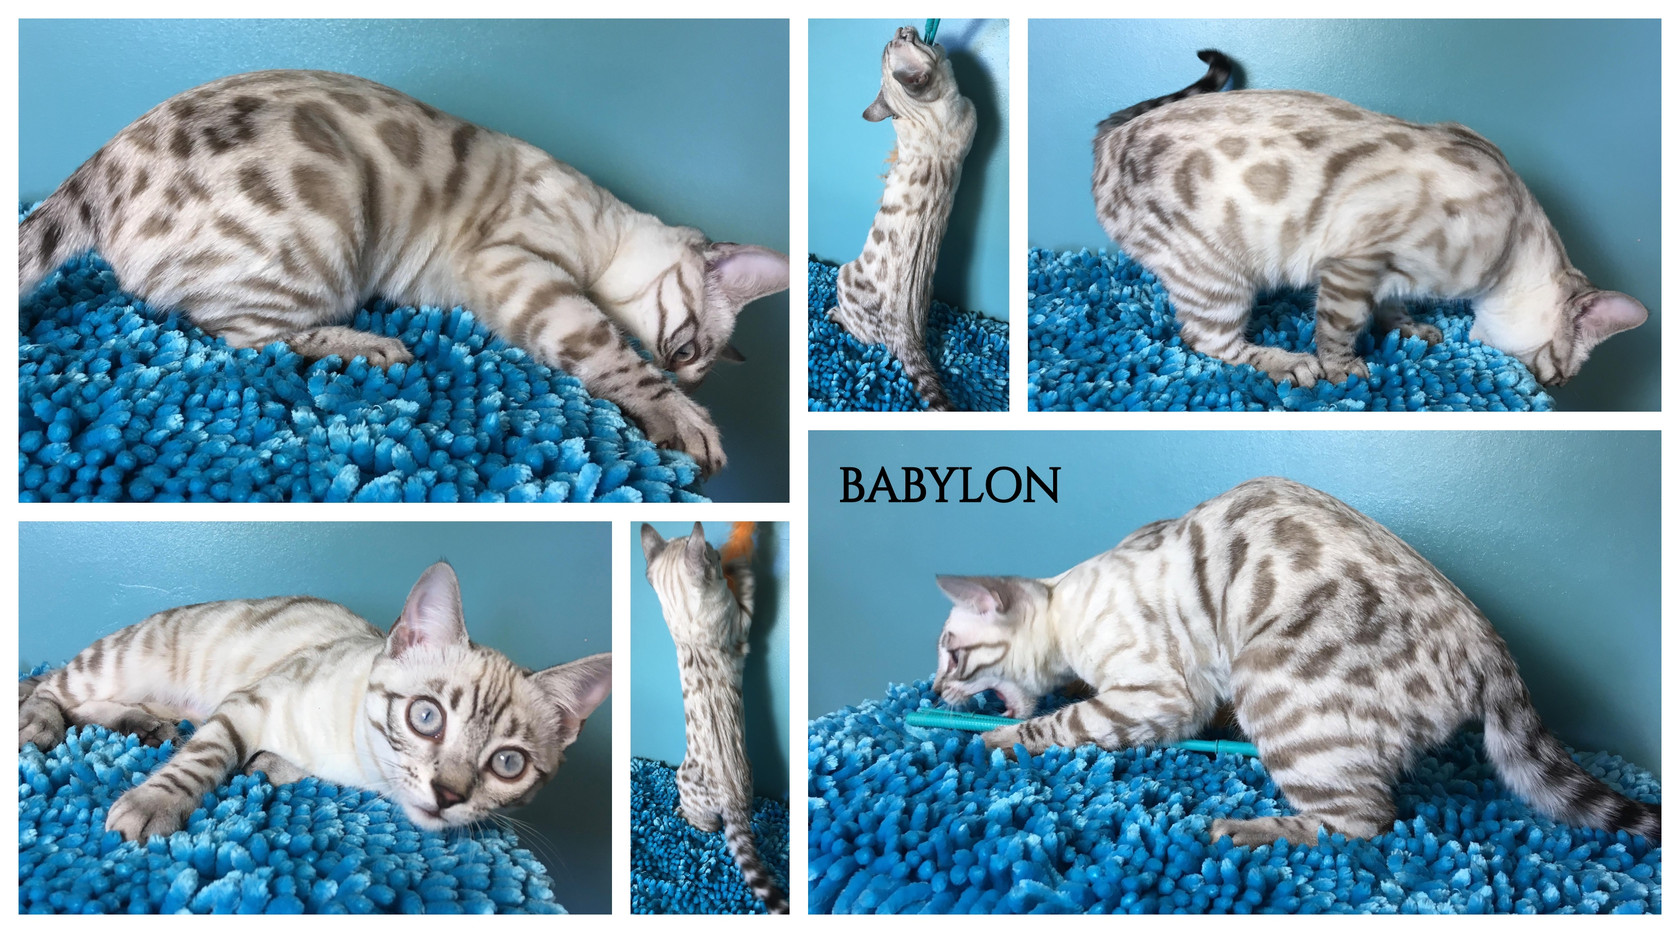 Babylon 16 weeks.jpg